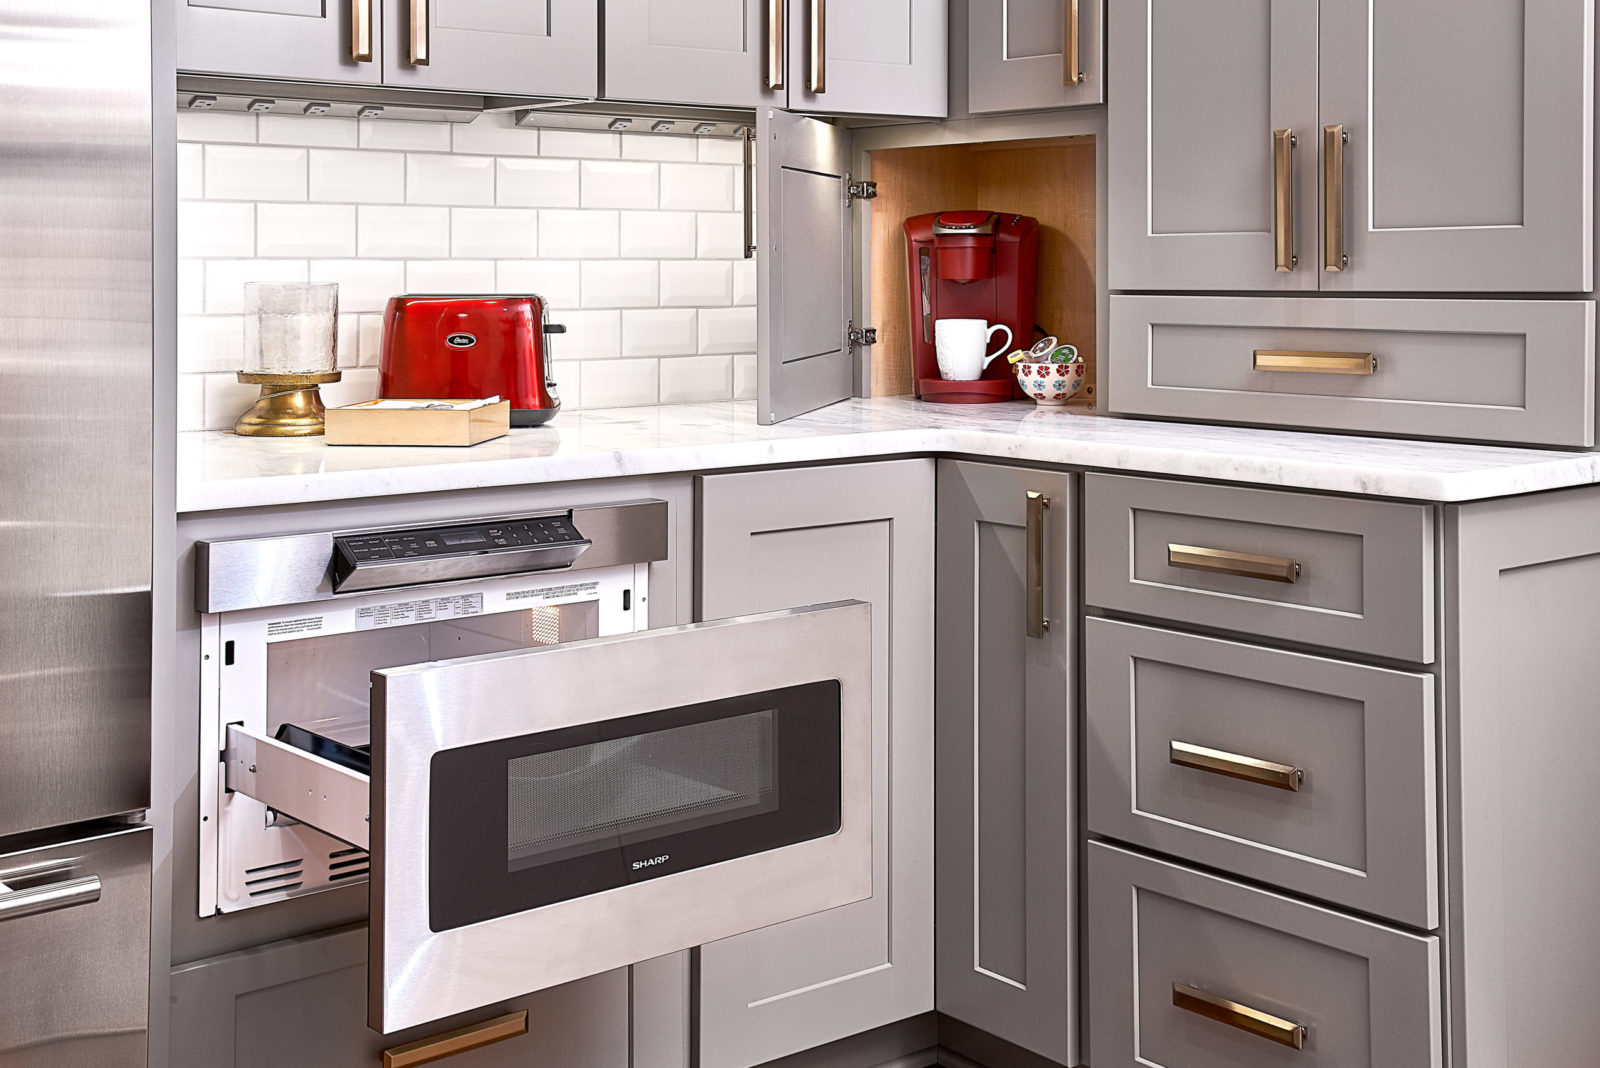 home-renovation-microwave-drawer-in-base-cabinet